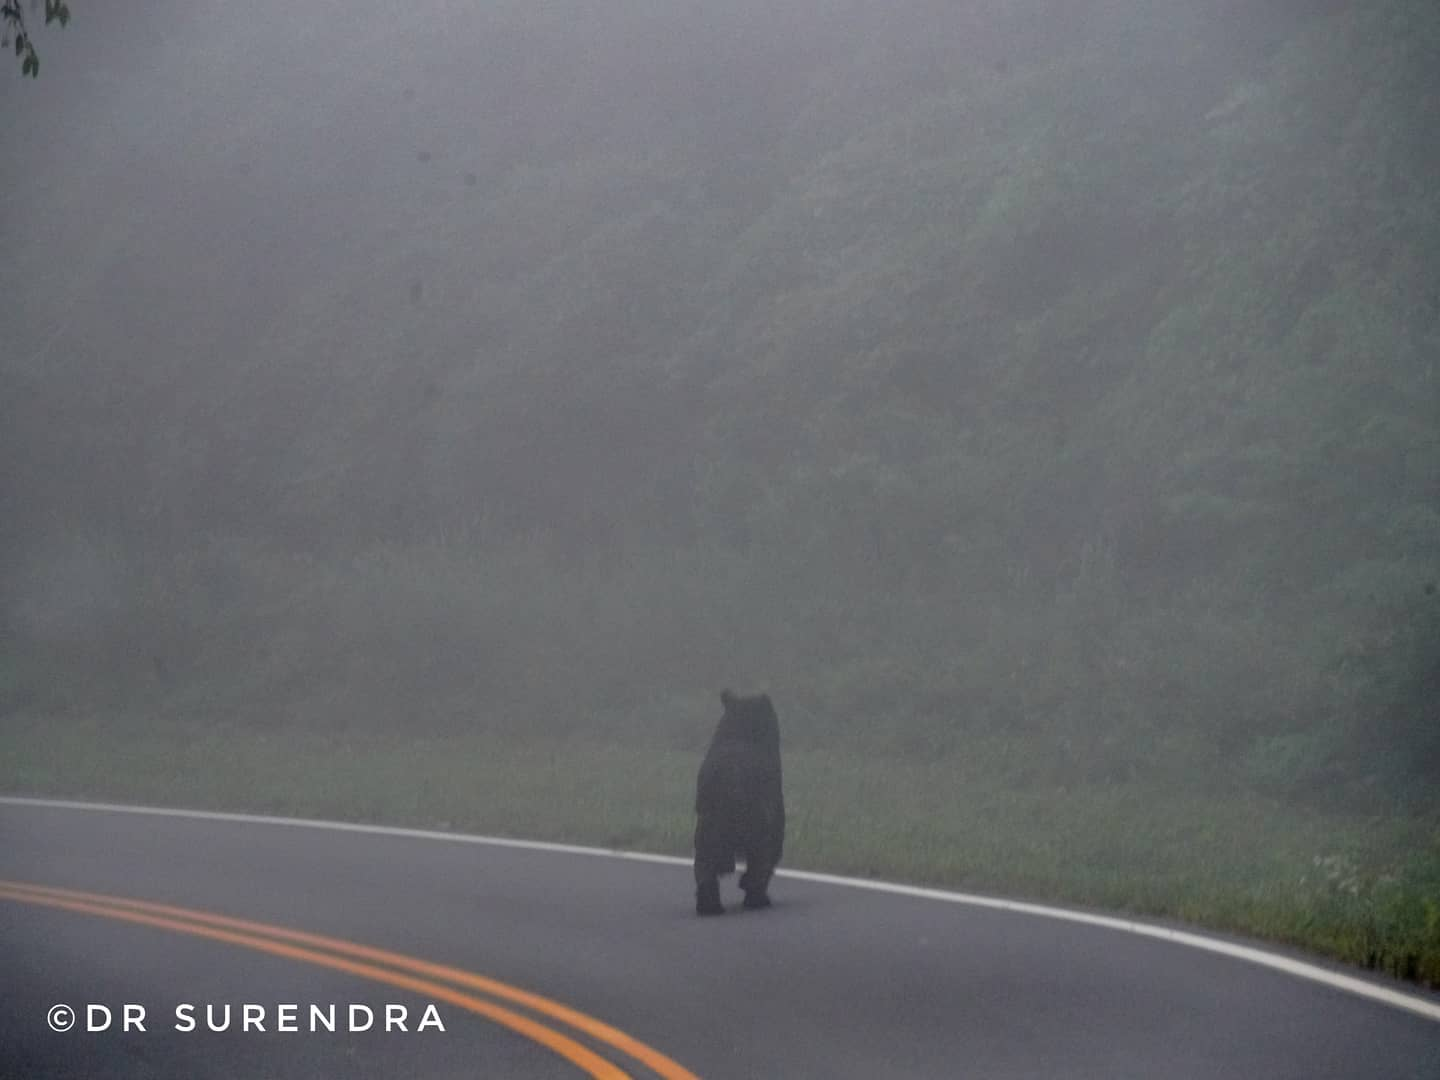 *My Picture of the day* Fleeting sight, Lasting memory - An American black bear made a rare appearance in the foggy evening during the scenic Skyline drive in the blue ridge mountains of Virginia US. ***** *Dr.Surendra* — at Blue Ridge Mountains - Virginia